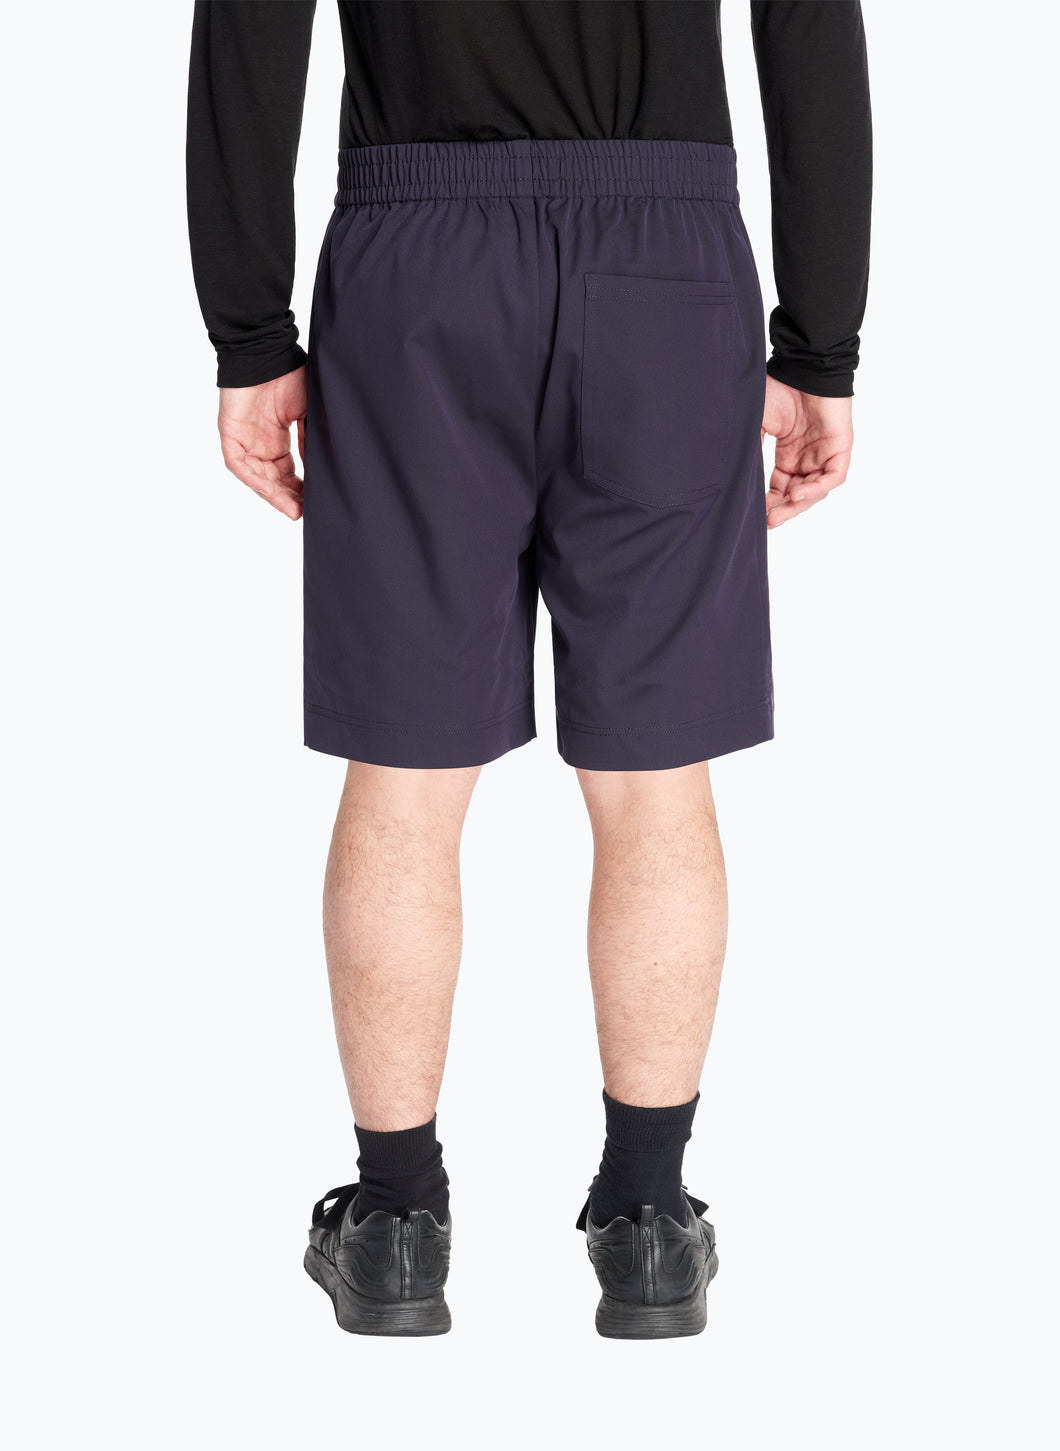 Bermuda Shorts with Stitched Waist in Navy Blue Technical Fabric